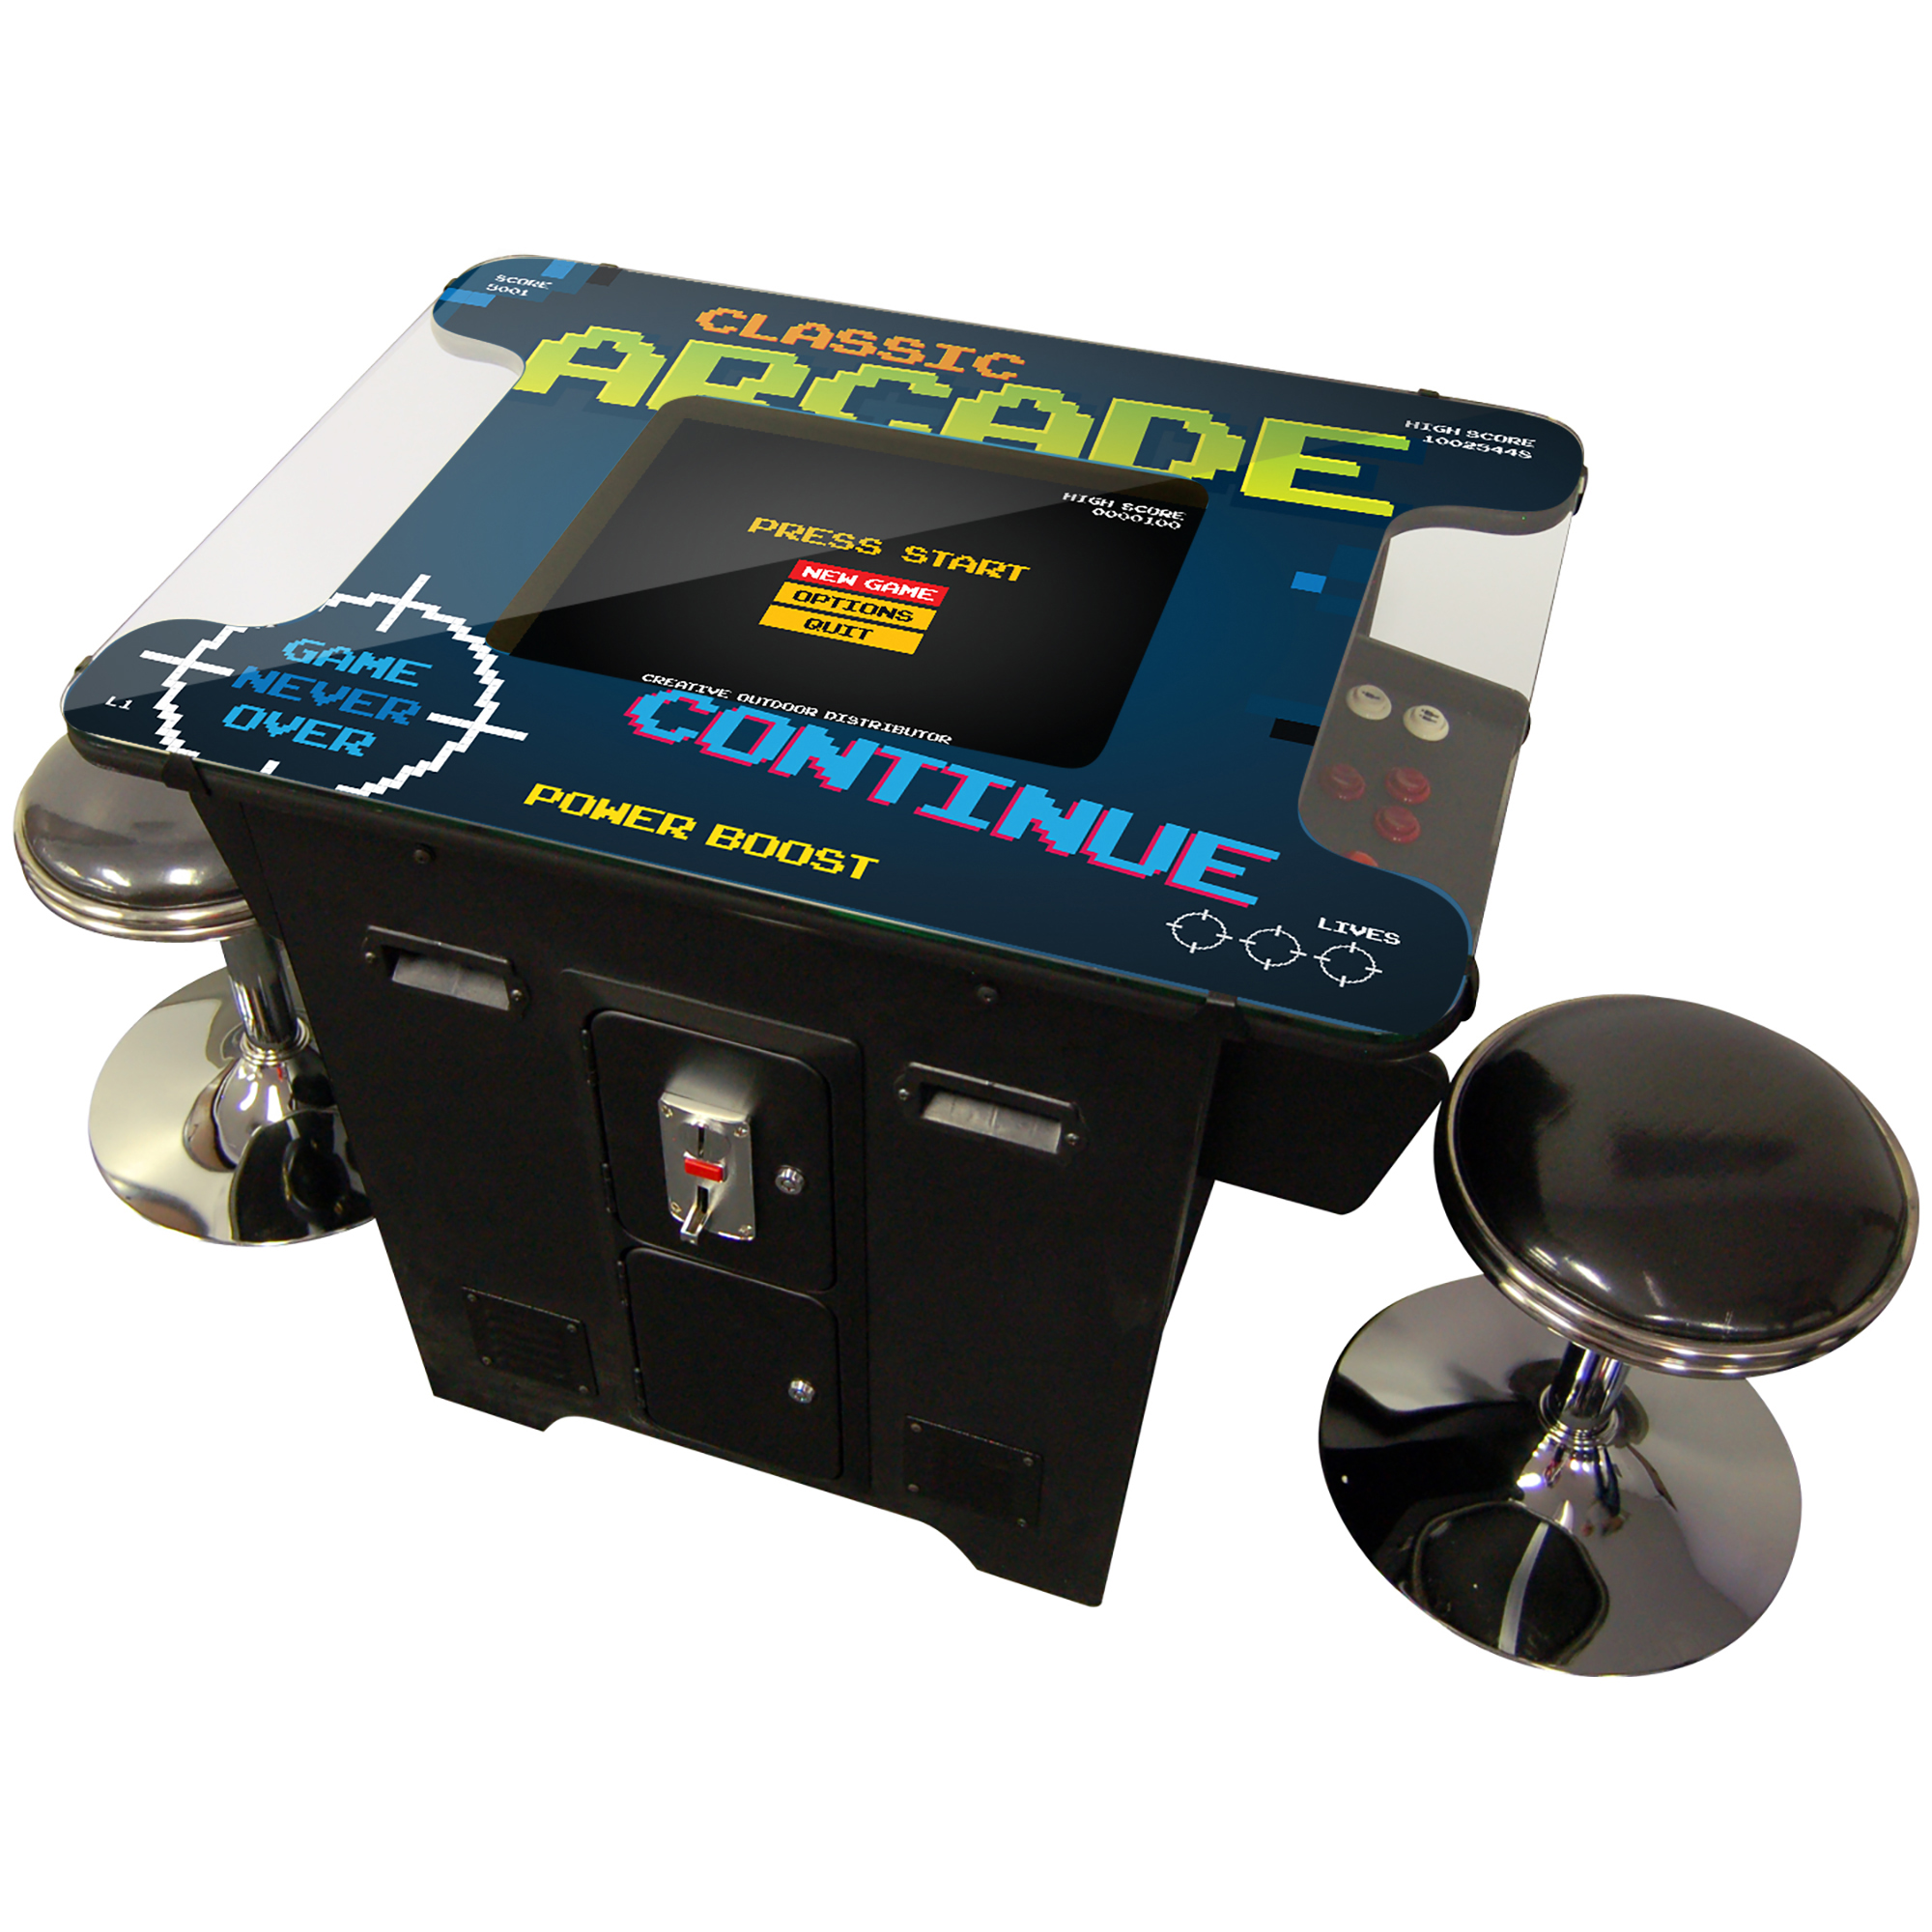 Creative Outdoor Cocktail Arcade Machine 412 Games Commercial Grade with Free STOOLS